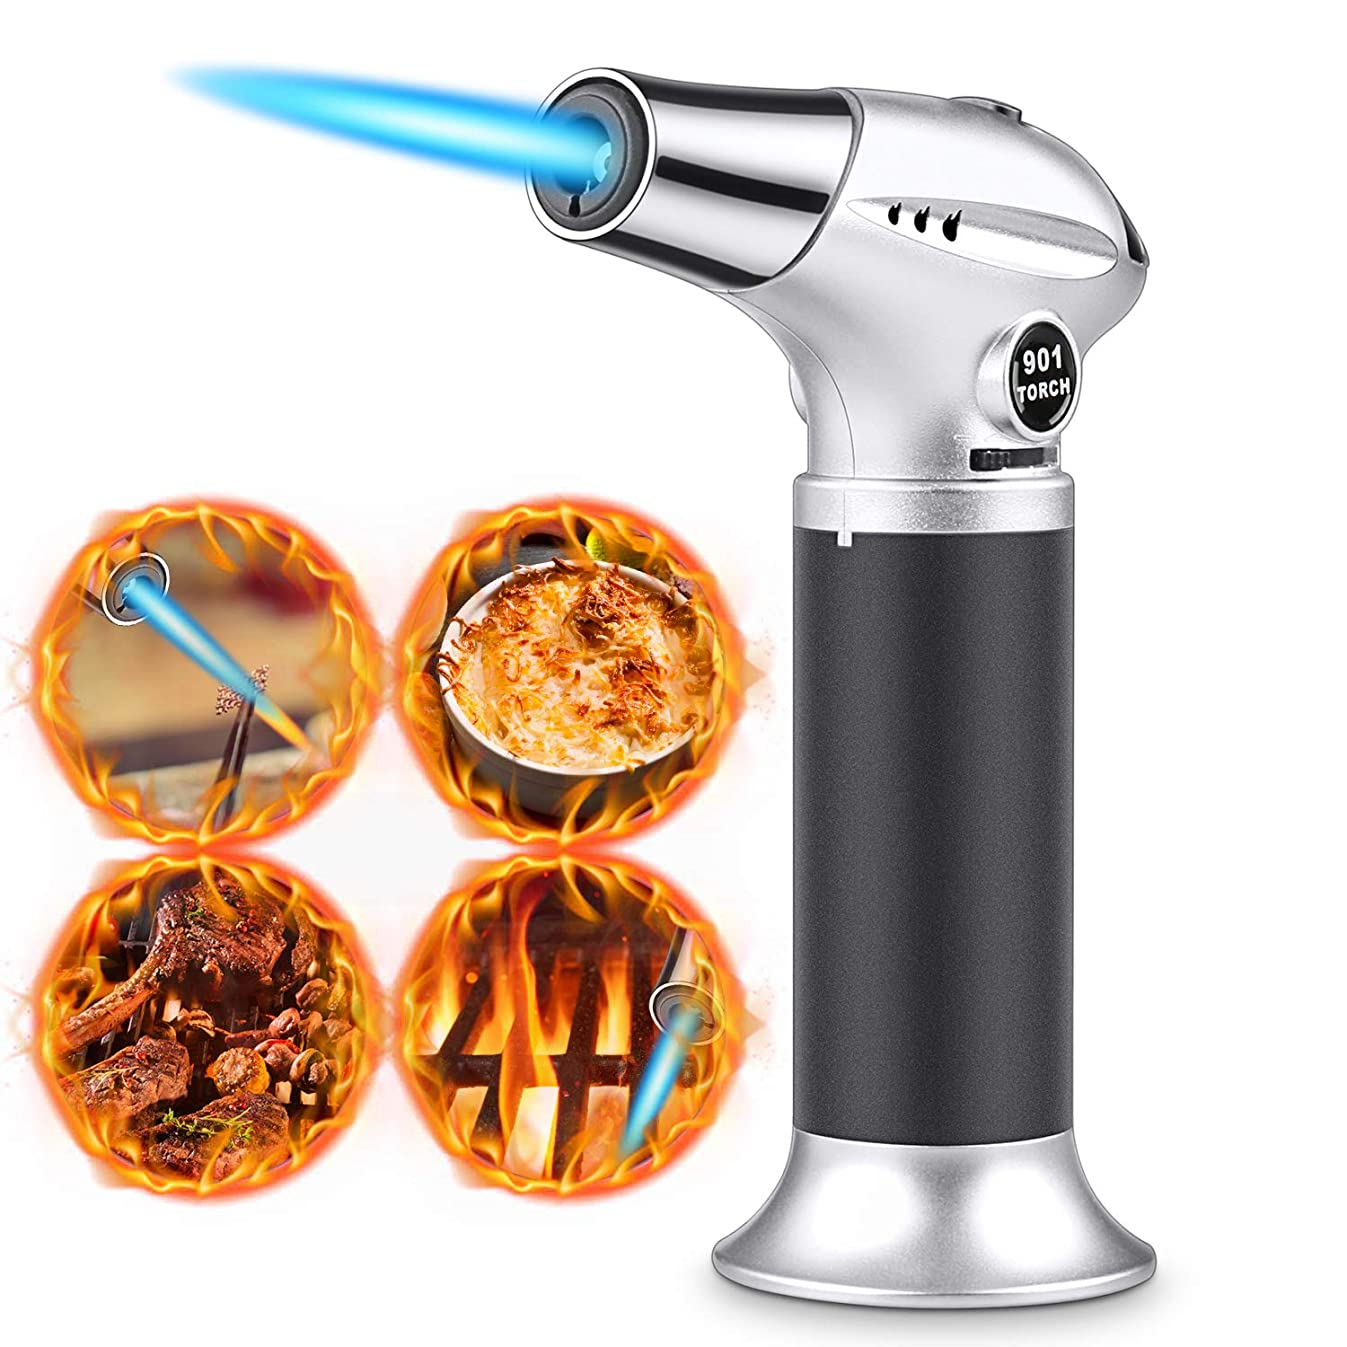 RenFox Blow Torch Kitchen Cooking Culinary Torch Butane Torch Lighter, with Safety Lock & Adjustable Flame, Refillable Butane Torch for Creme Brulee, BBQ Baking DIY (Gas Not Included)